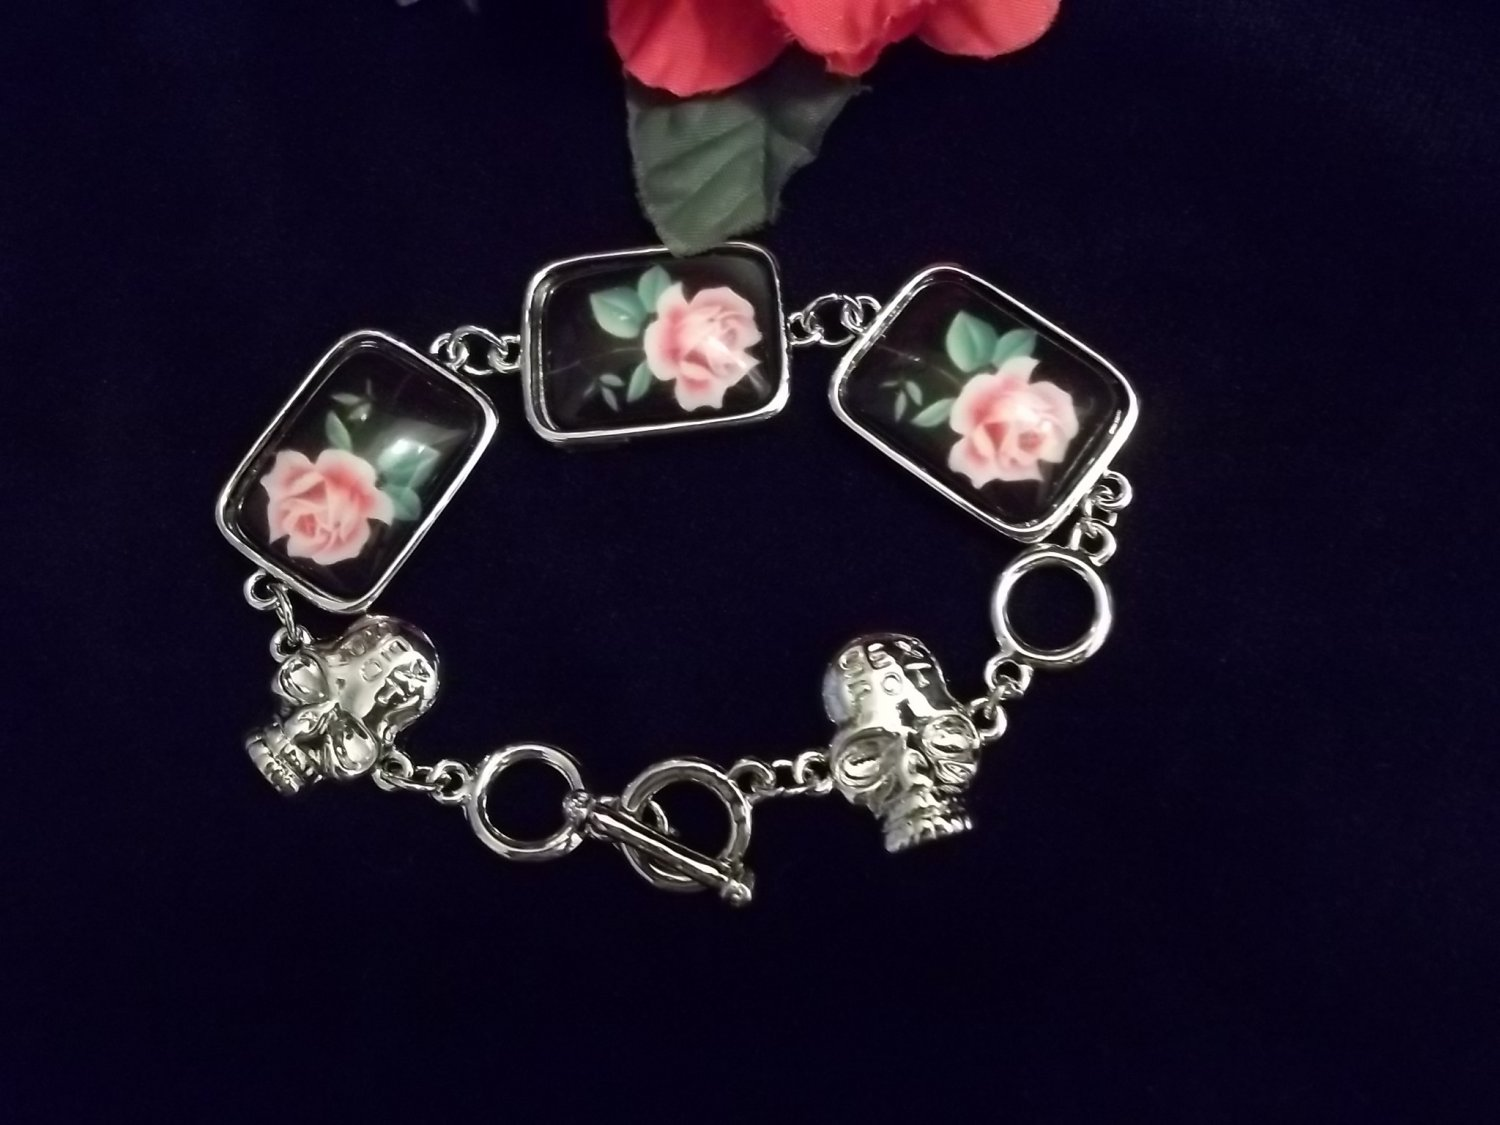 Unique Smooth Square Rose and Skull Toggle Bracelet